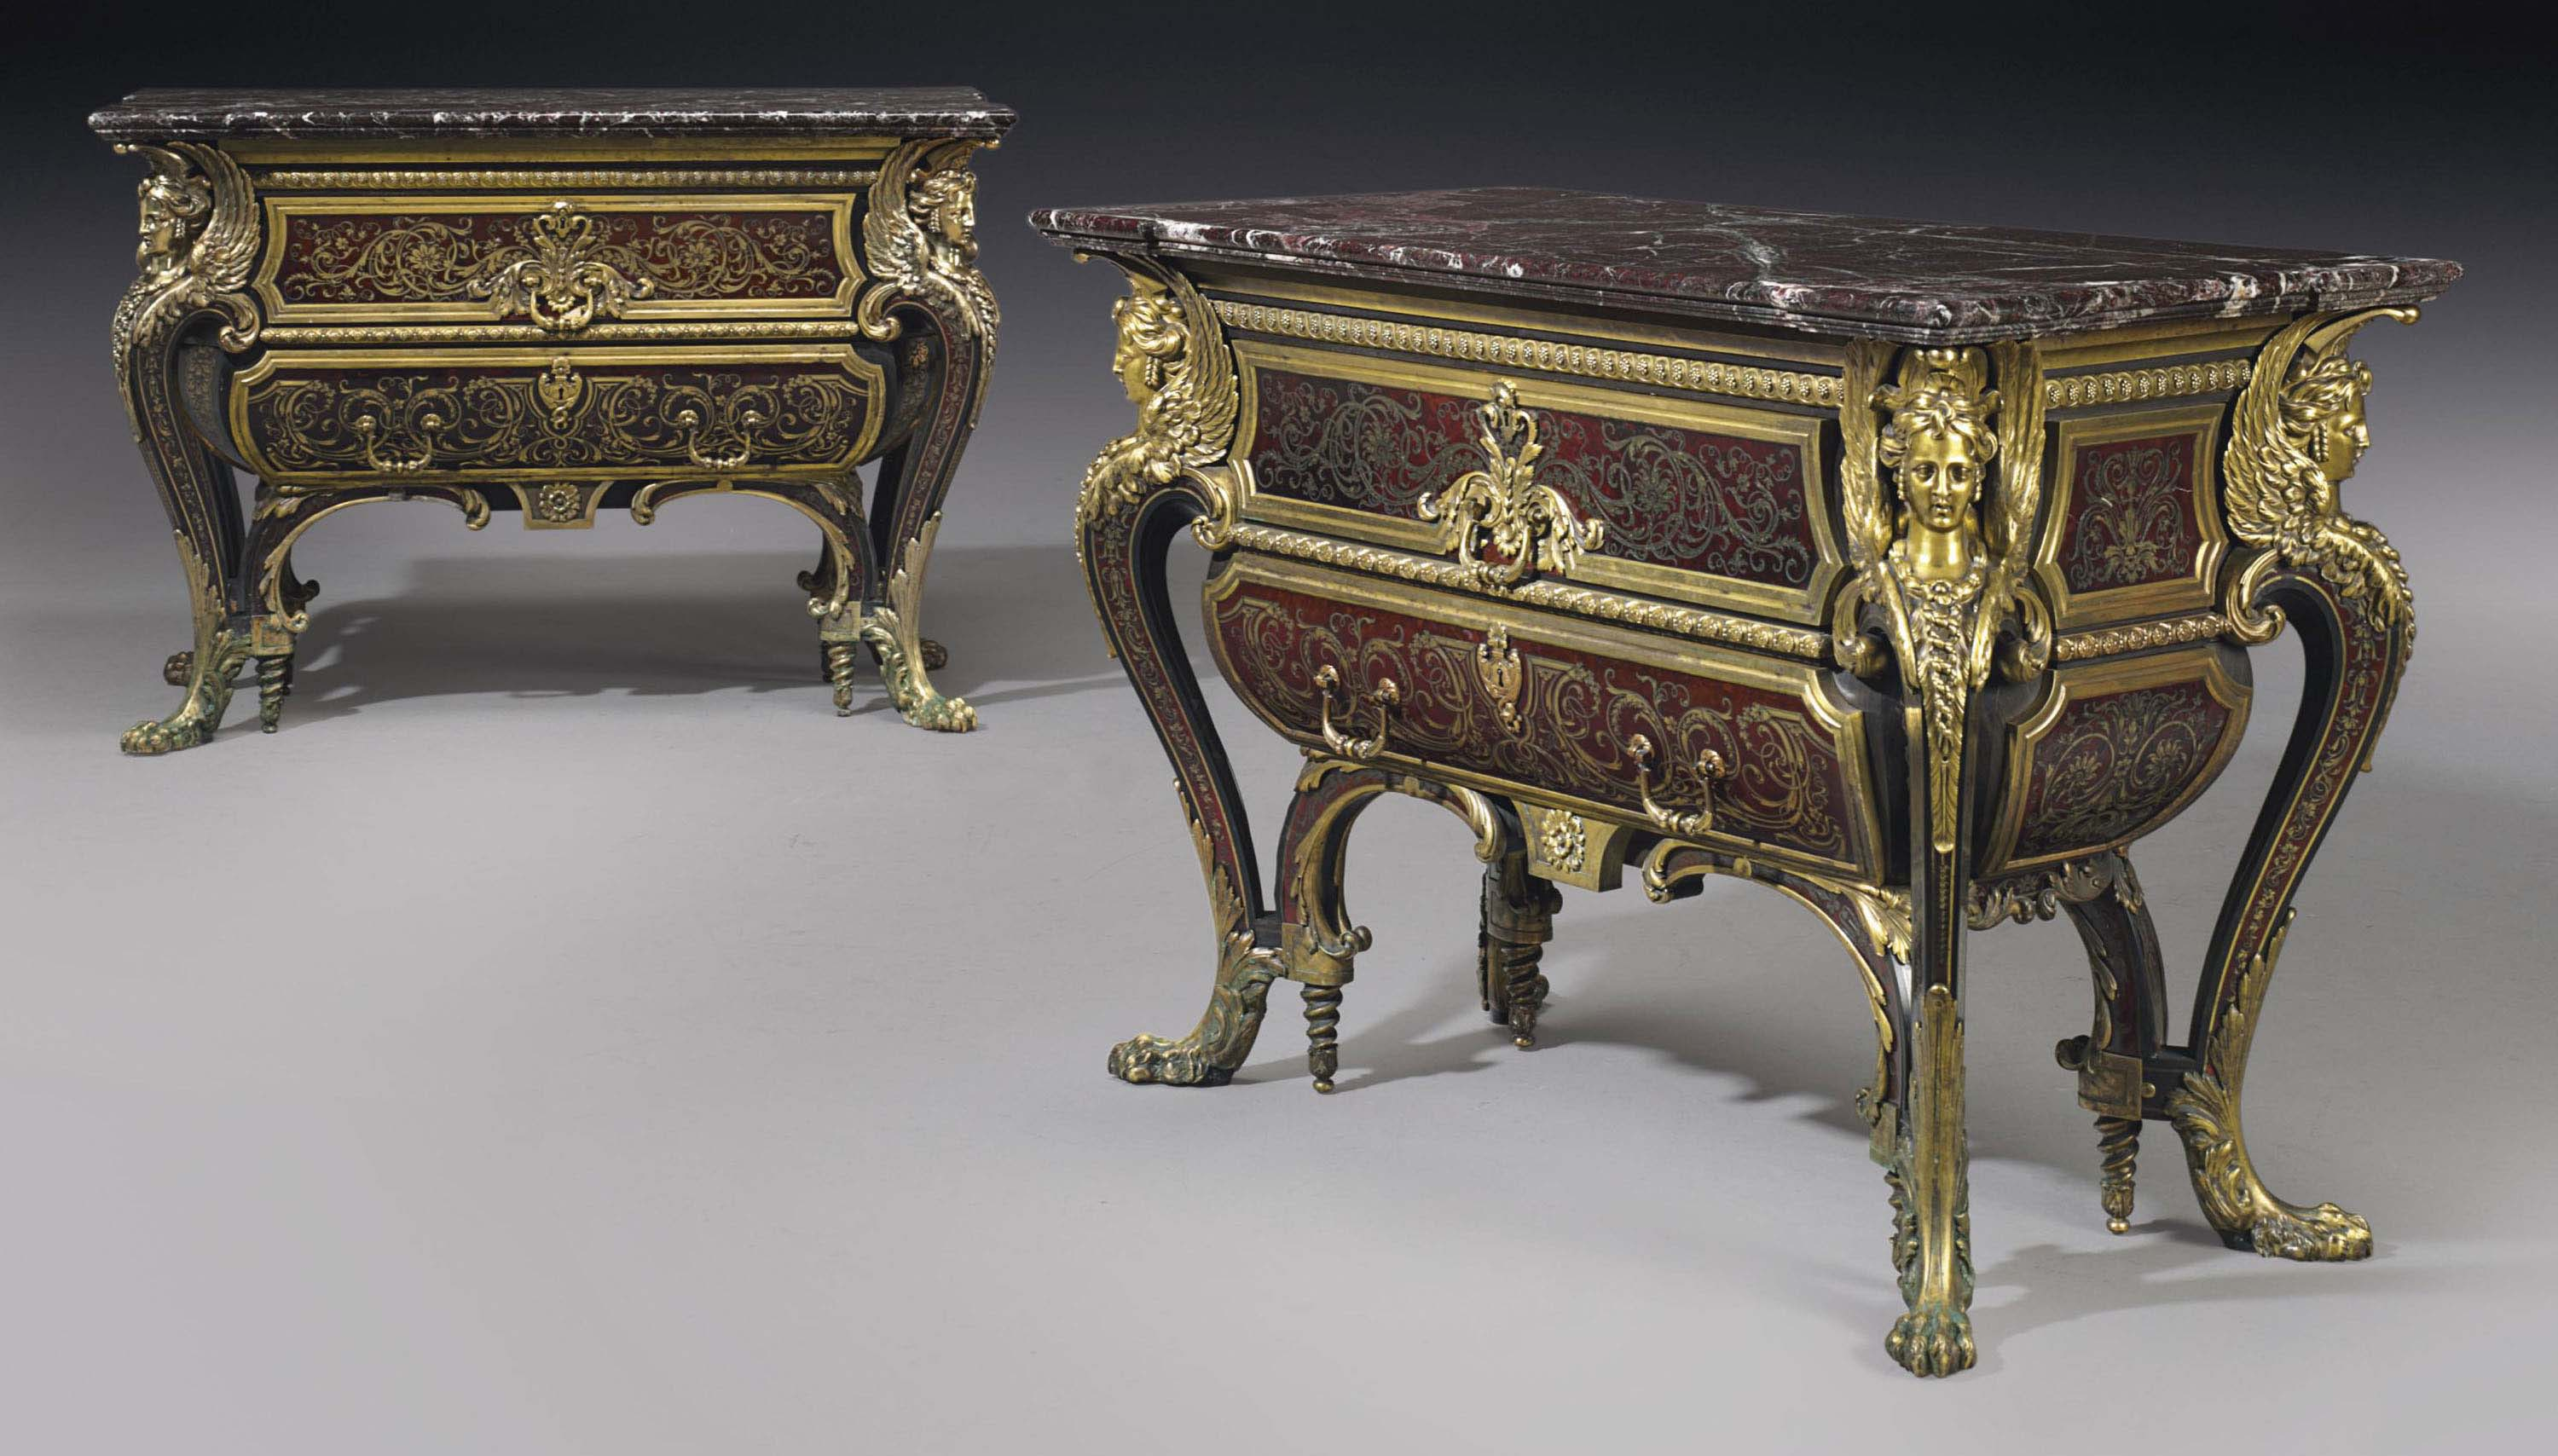 A FINE PAIR OF NAPOLEON III ORMOLU-MOUNTED CUT-BRASS, RED TORTOISESHELL-INLAID AND EBONY 'BOULLE' COMMODES